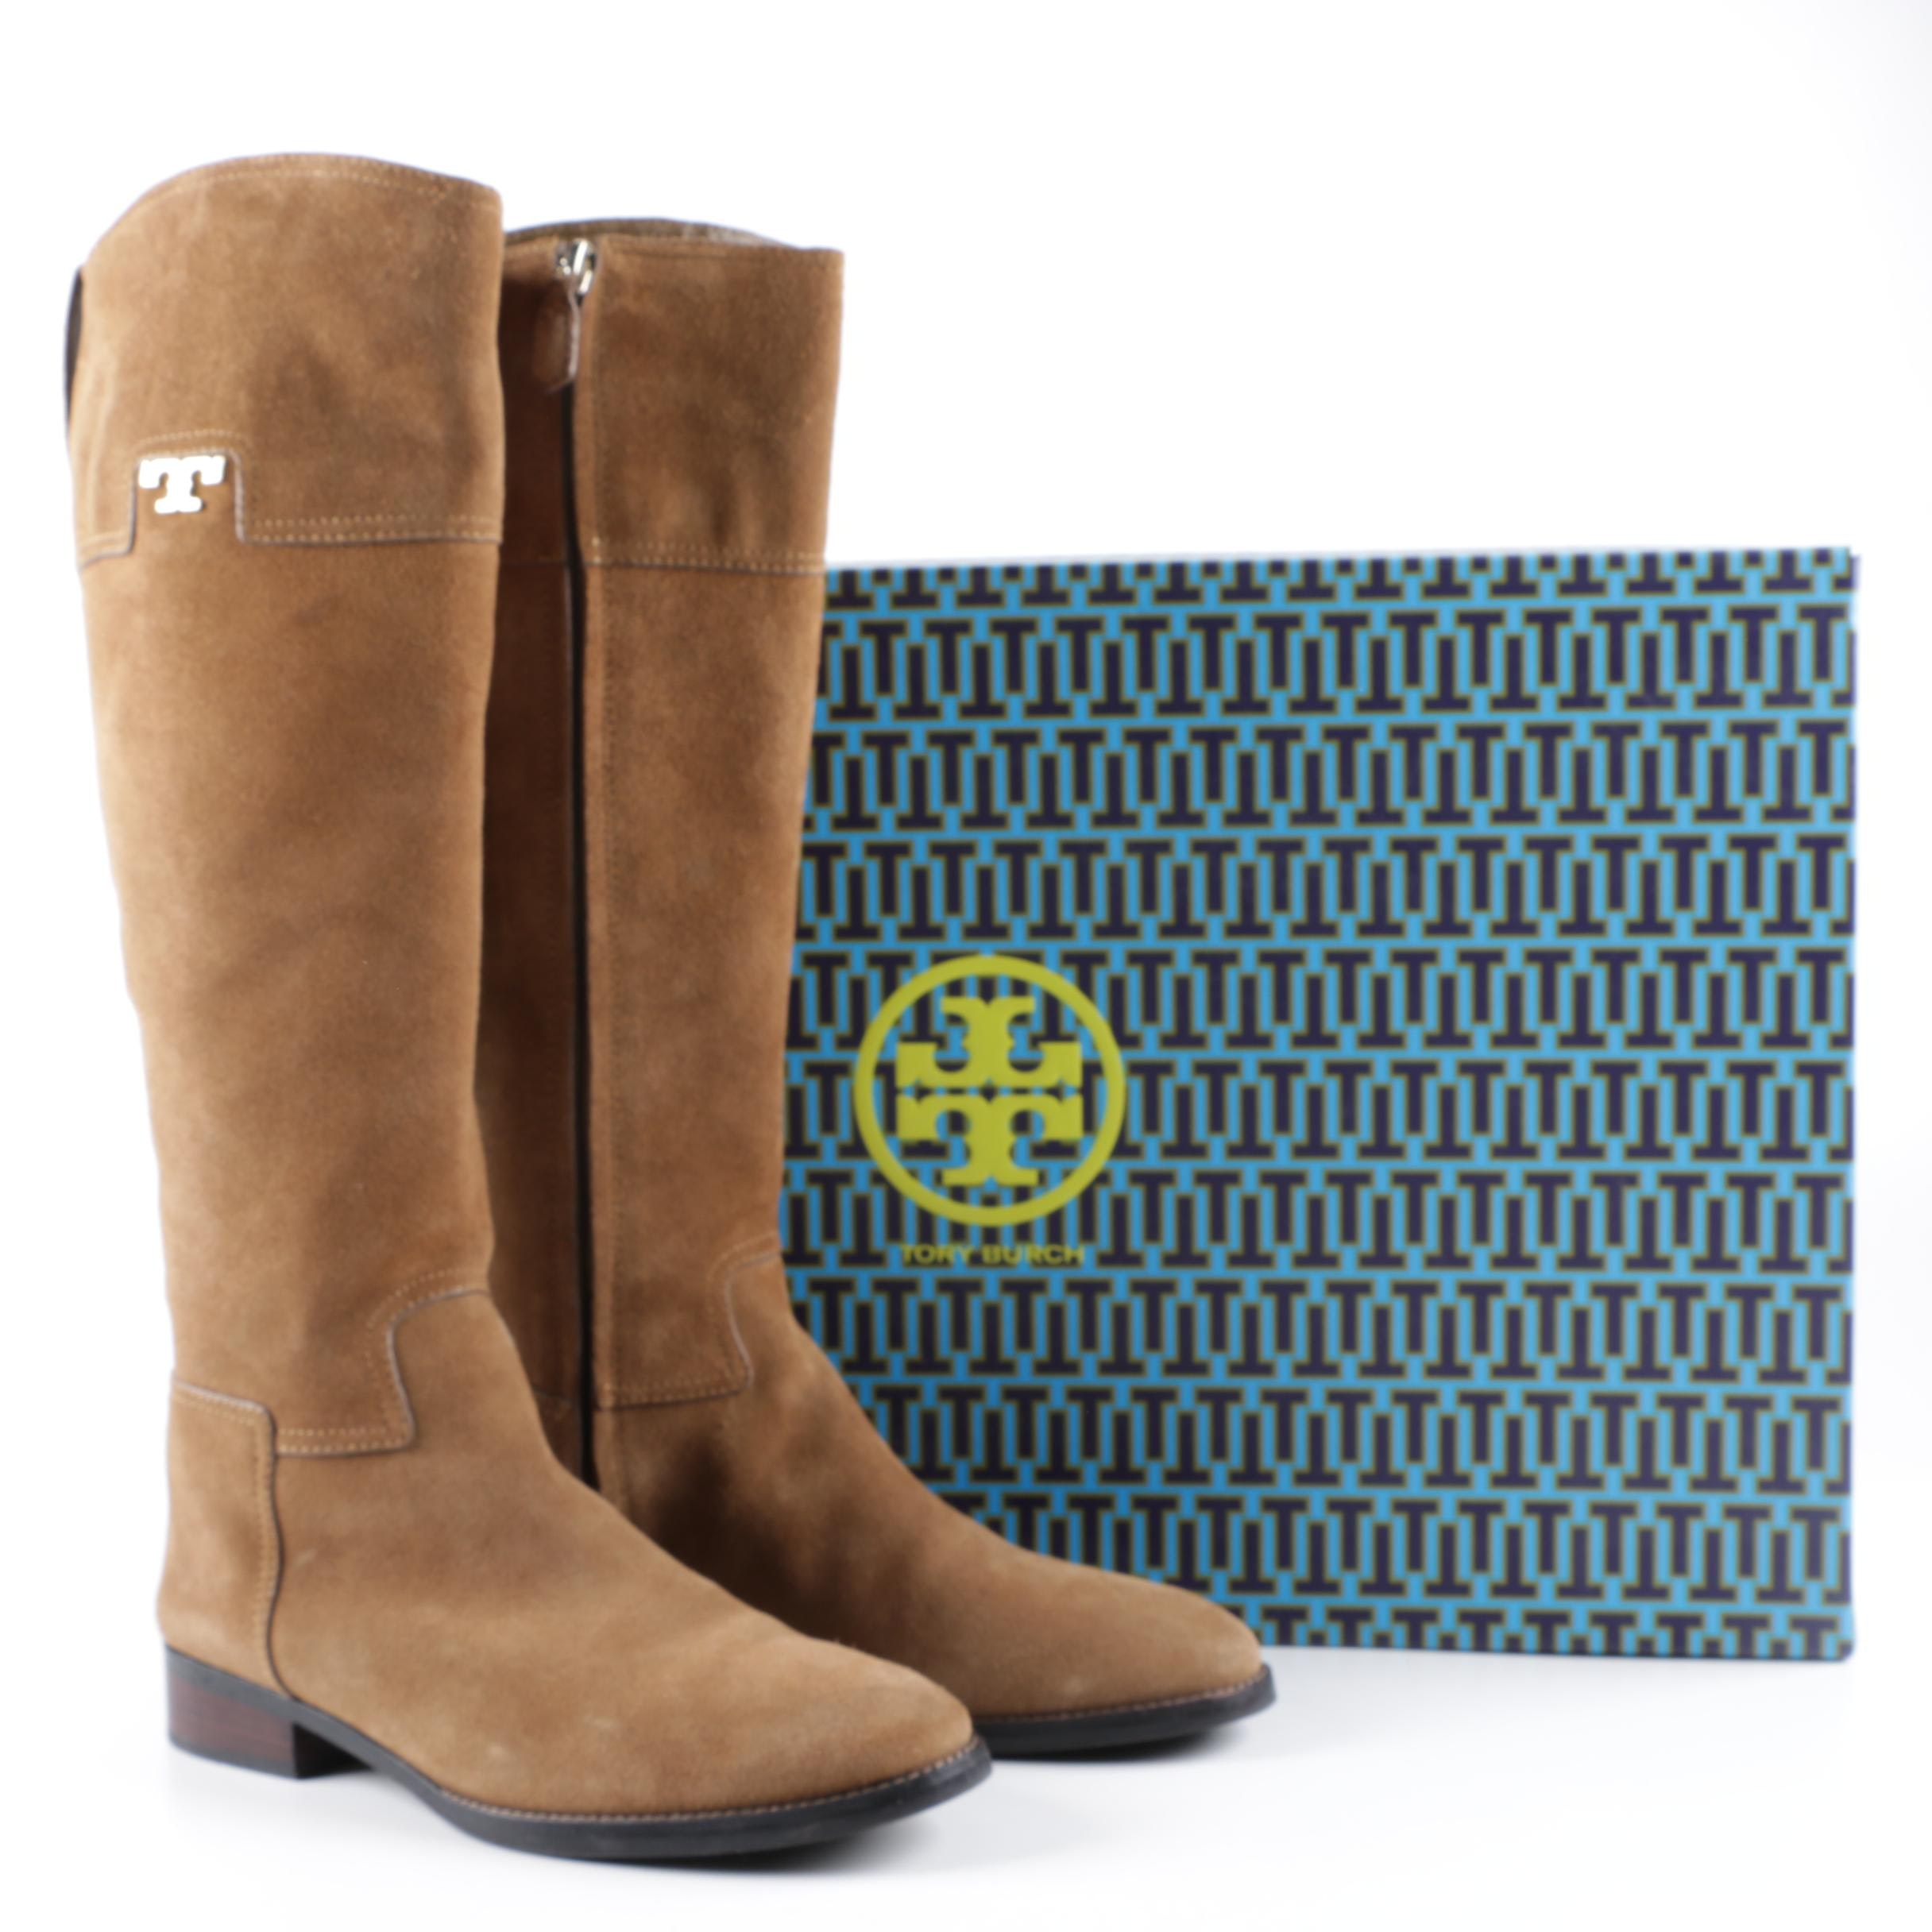 Tory Burch Selden Tan Suede Riding Boots